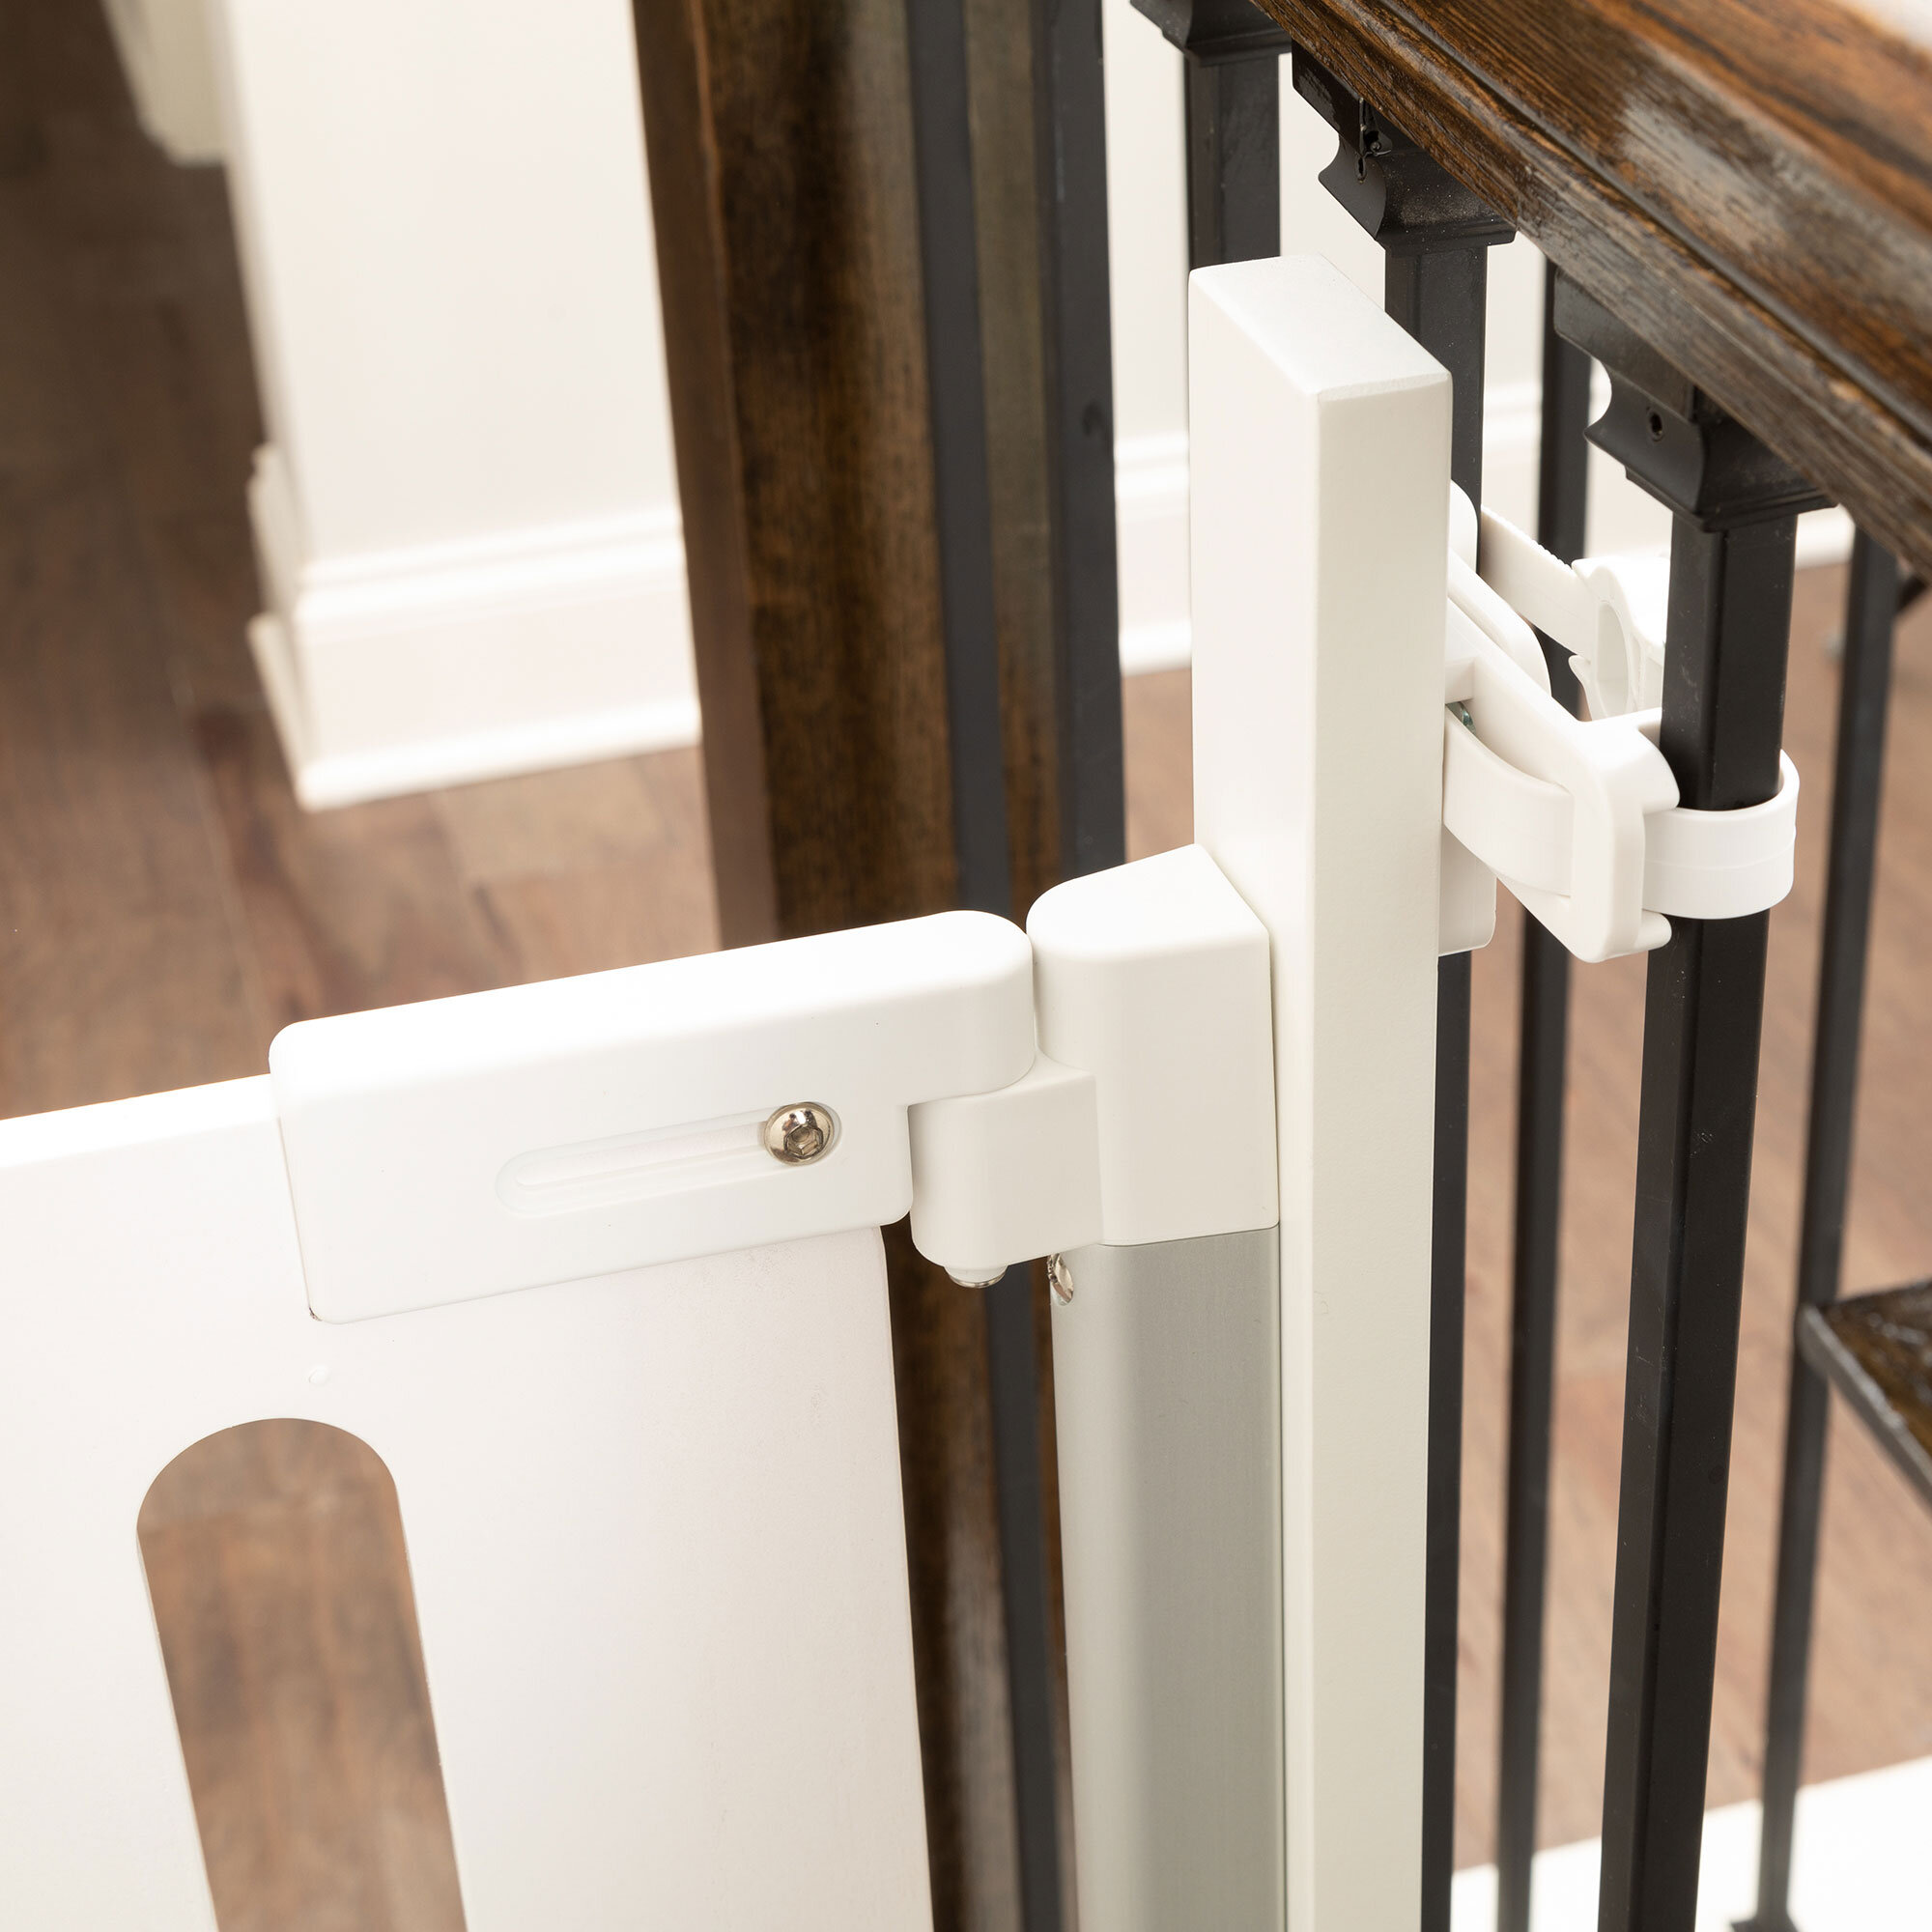 Universal Stair Mounting Kit Qdos Baby Gates Child Safety And Baby Proofing Products Qdos Safety